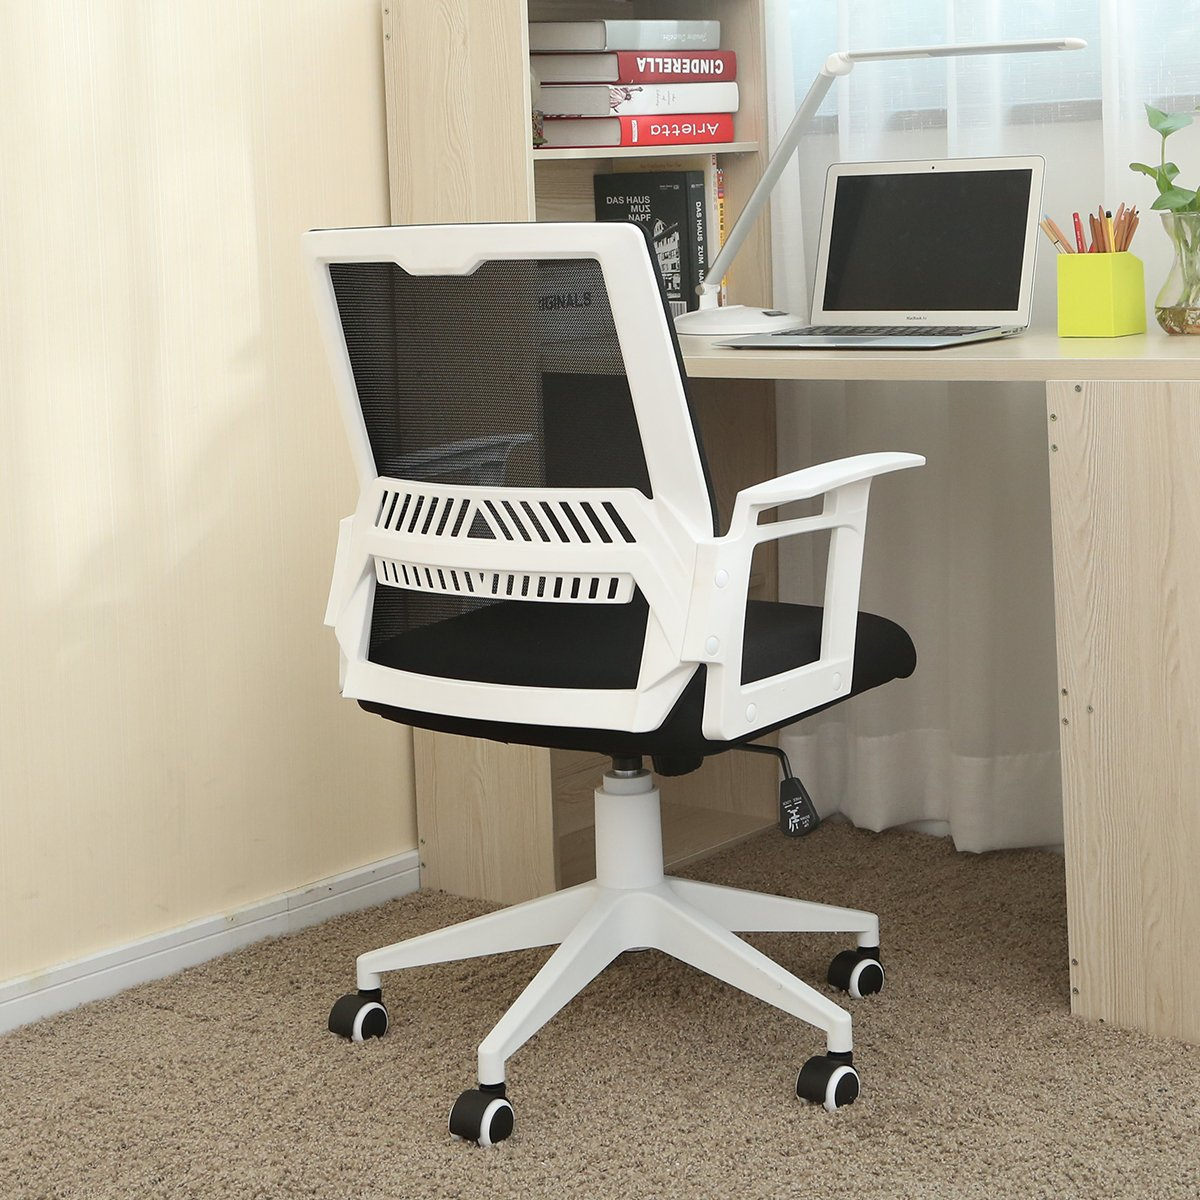 Hbada Desk Office Chair - Adjustable Modern Computer Chair, Meeting and Reception Chairs with Ergonomic Mesh Back and Lumbar Support Low Back - White